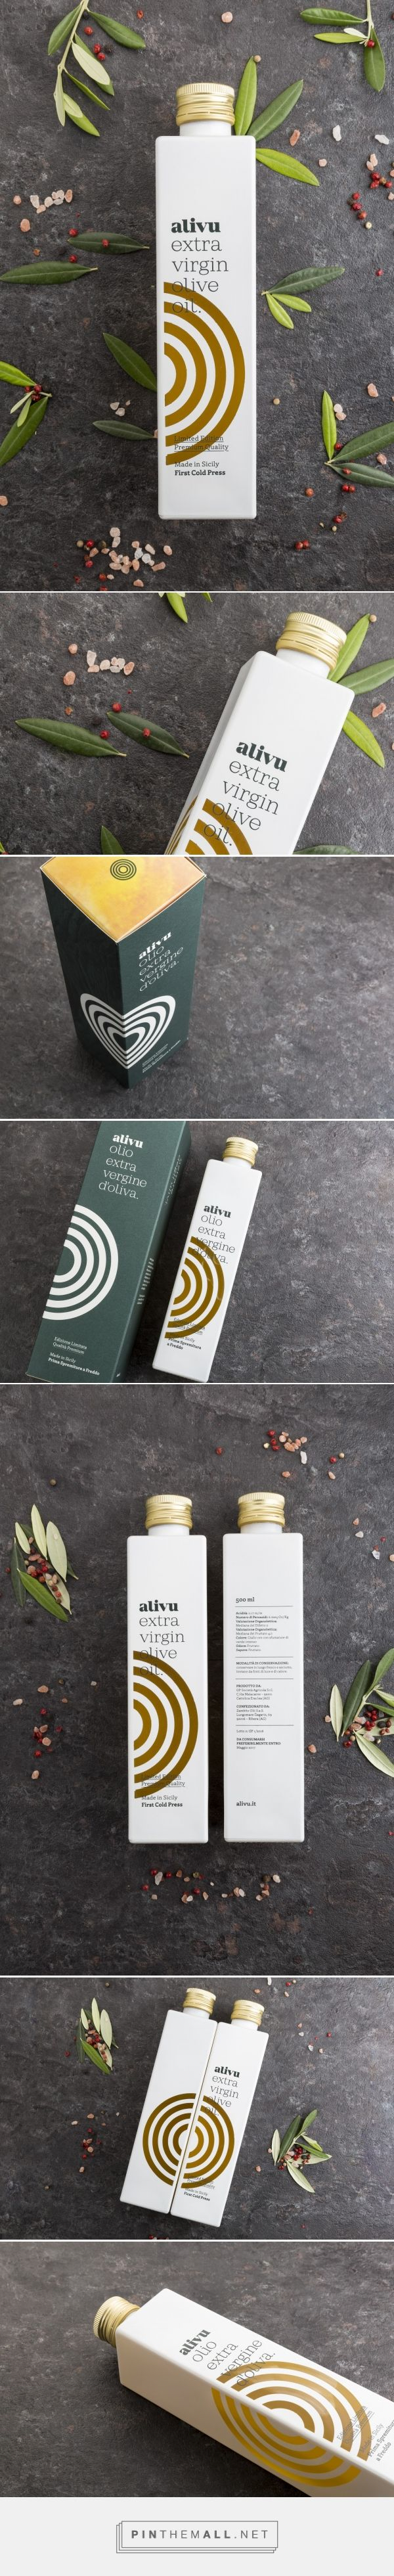 Alivu Olive Oil - Packaging of the World - Creative Package Design Gallery - http://www.packagingoftheworld.com/2017/07/marco-cervetti-knives-id.html - created via https://pinthemall.net